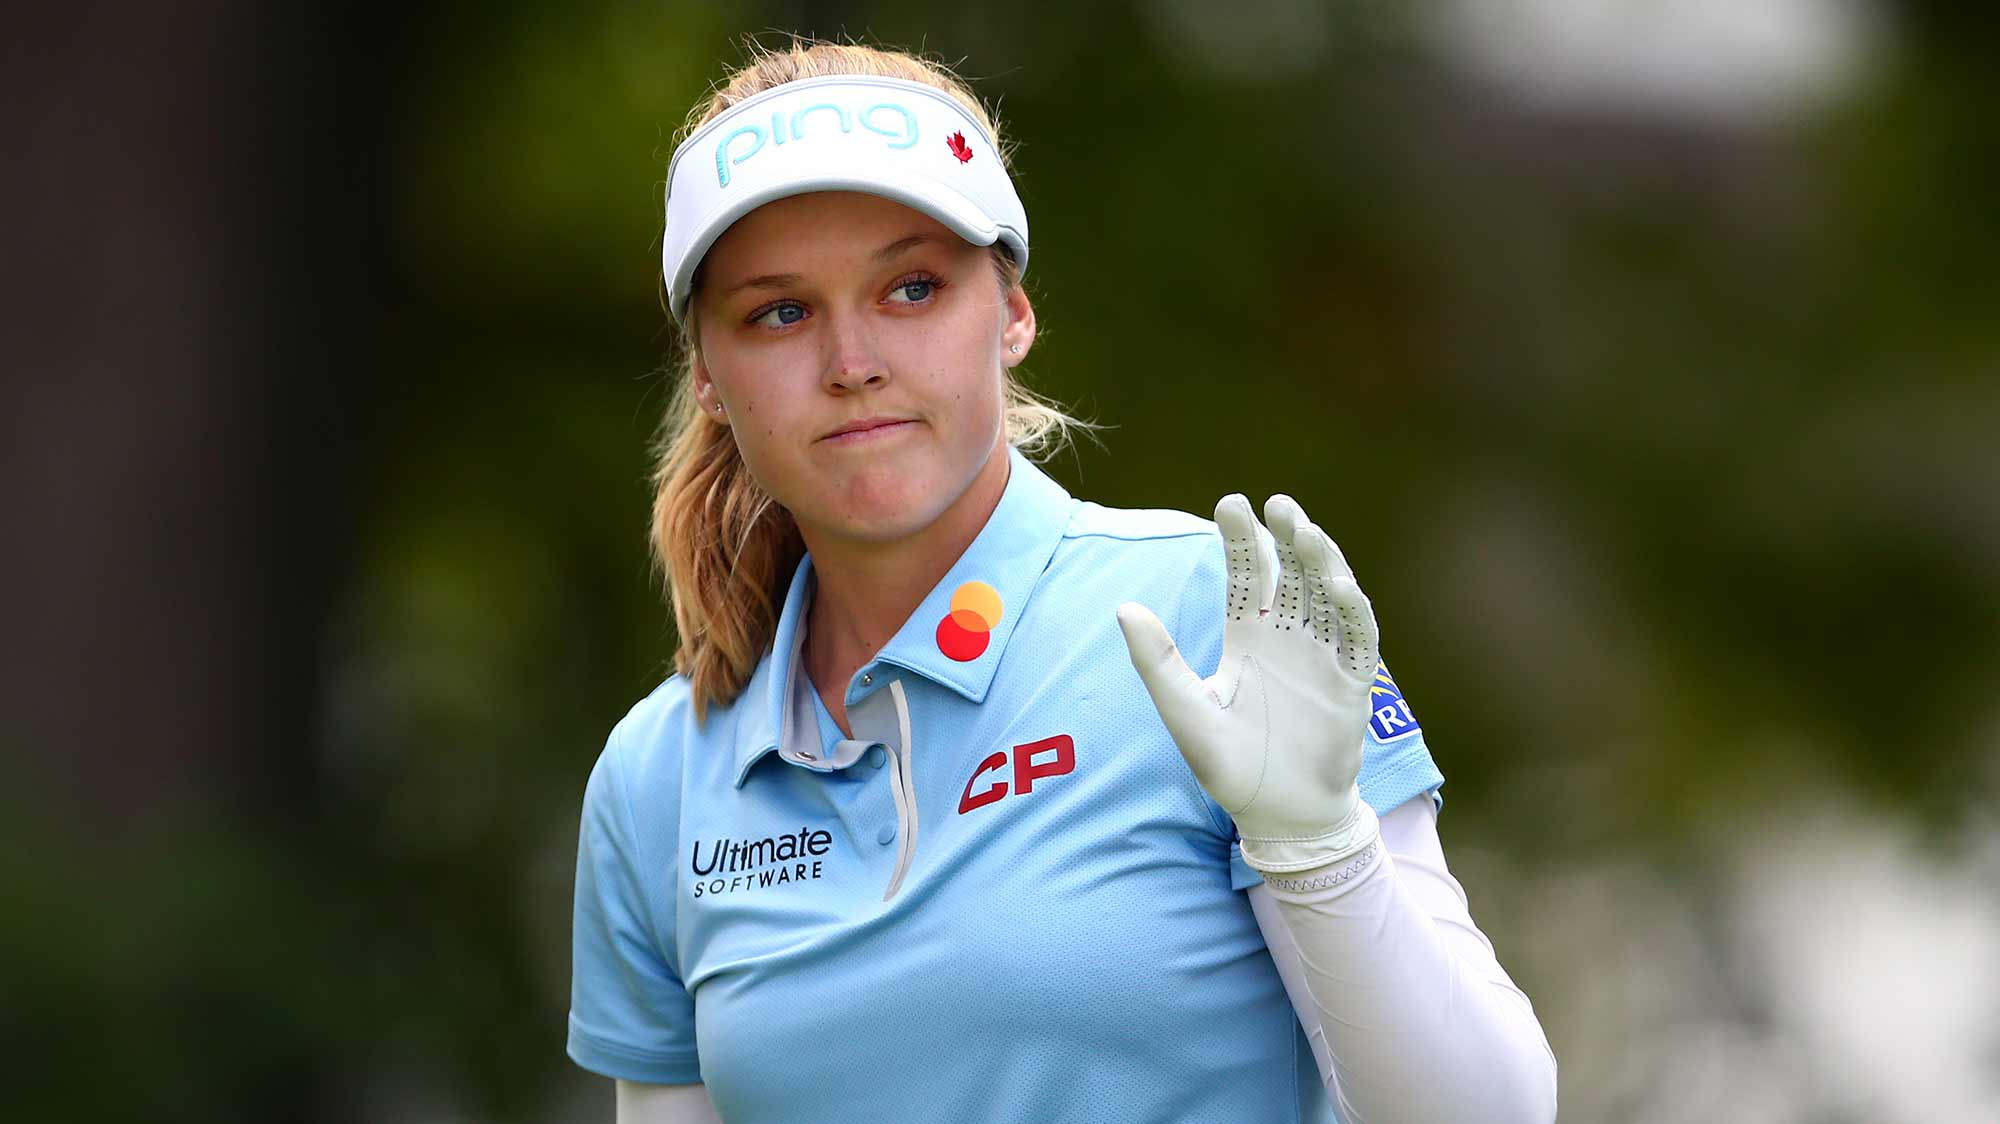 Brooke Henderson of Canada acknowledges the crowd prior to teeing off on the 1st hole during the third round of the CP Women's Open at Magna Golf Club on August 24, 2019 in Aurora, Canada